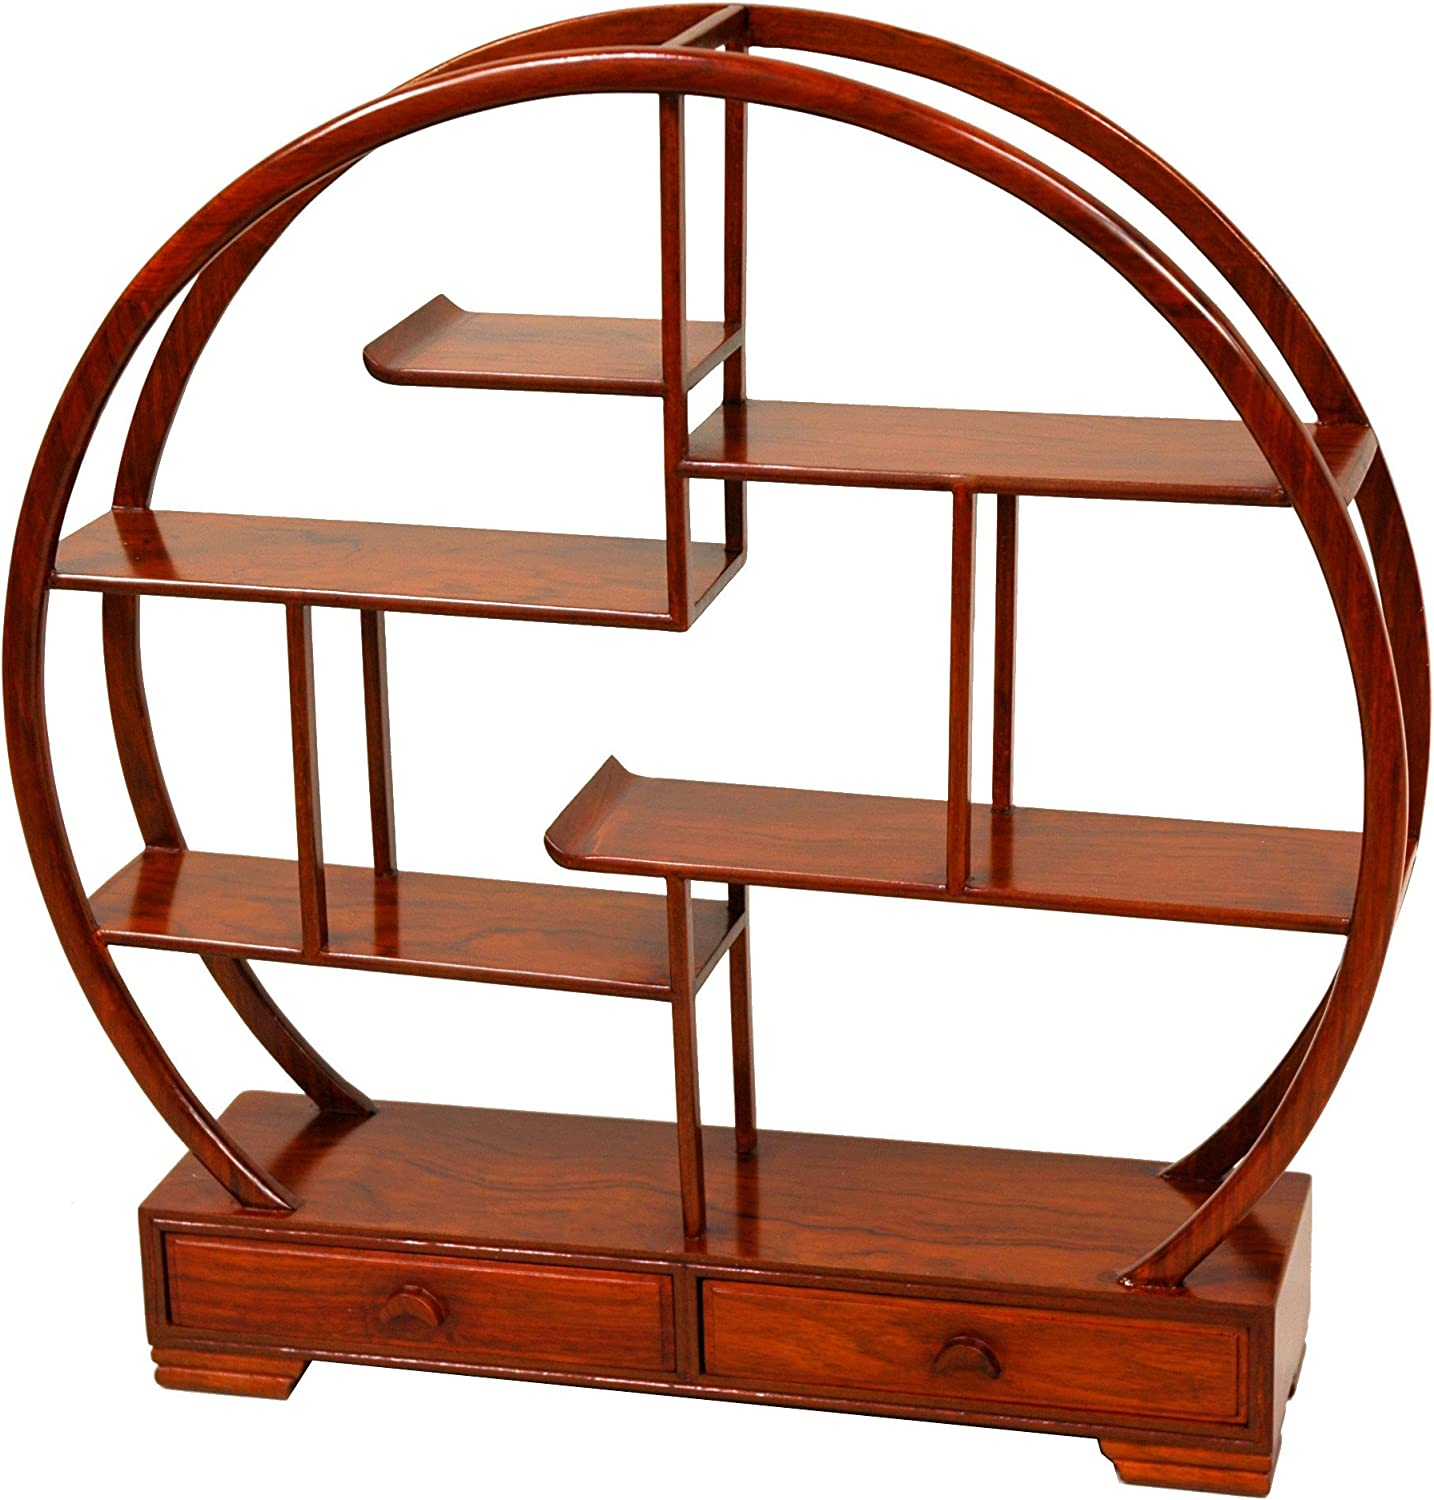 Oriental Furniture Rosewood Sales for sale Mingei - Daily bargain sale Stand Display Honey